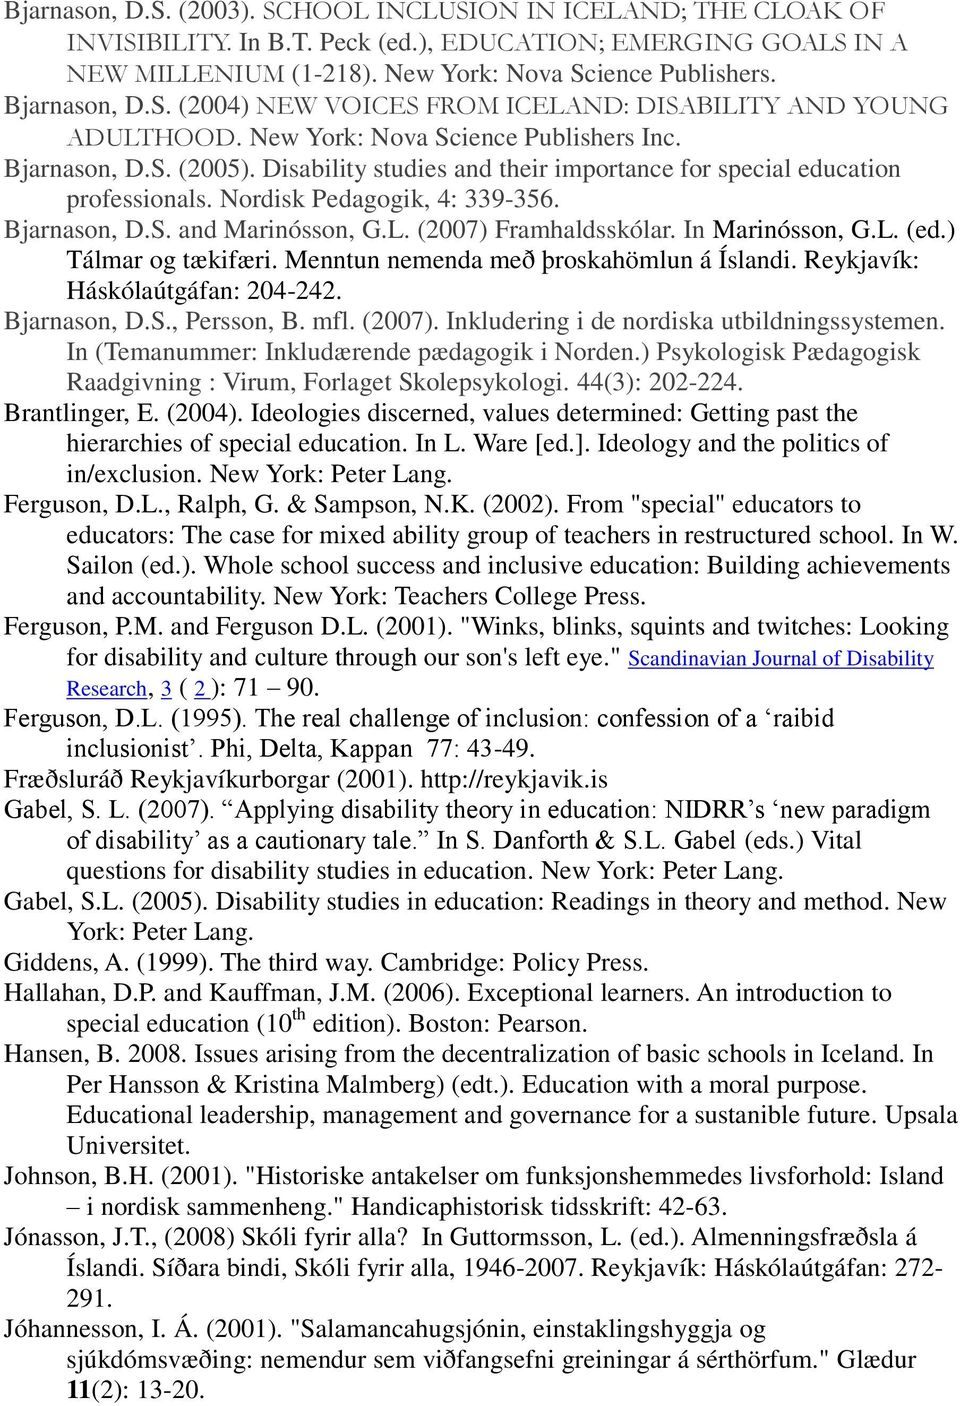 Disability studies and their importance for special education professionals. Nordisk Pedagogik, 4: 339-356. Bjarnason, D.S. and Marinósson, G.L. (2007) Framhaldsskólar. In Marinósson, G.L. (ed.